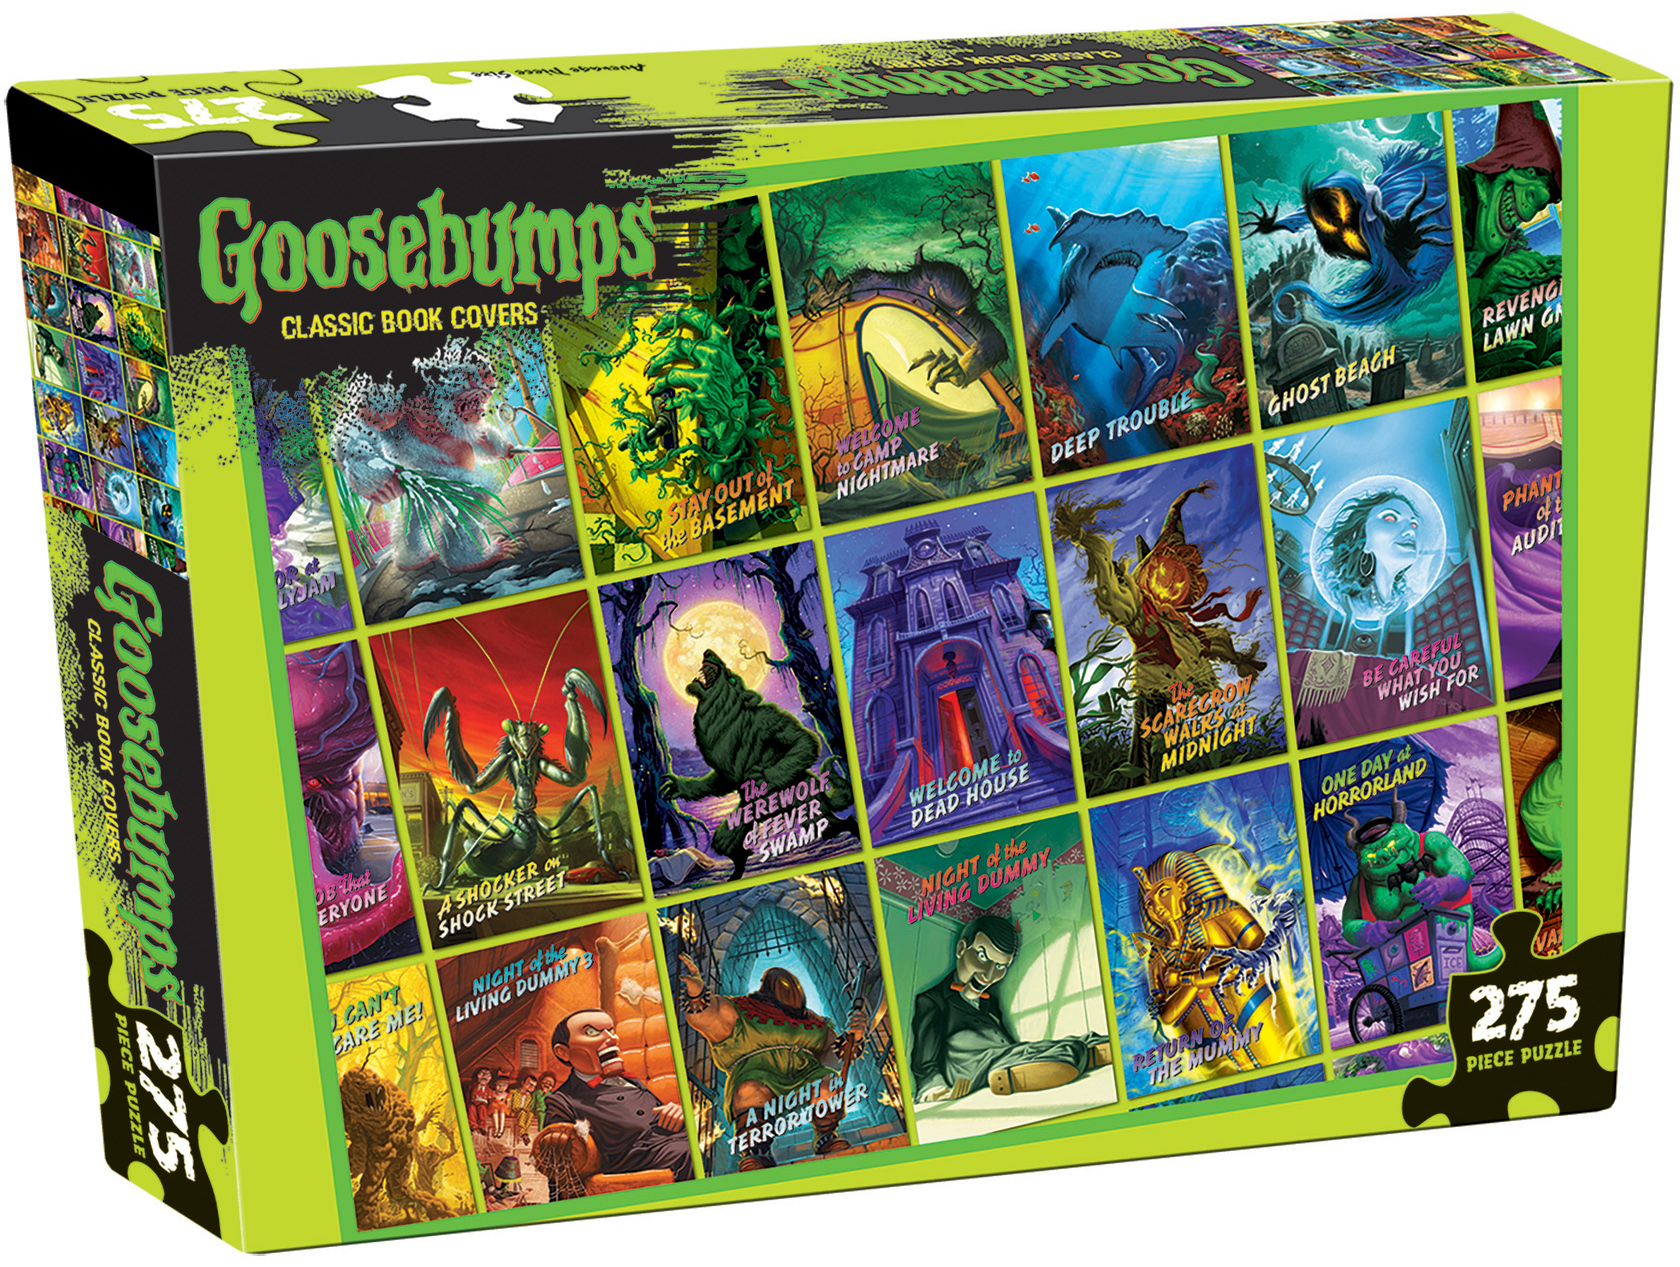 Goosebumps 275 piece jigsaw puzzle from Outset Media Canadian Distributor